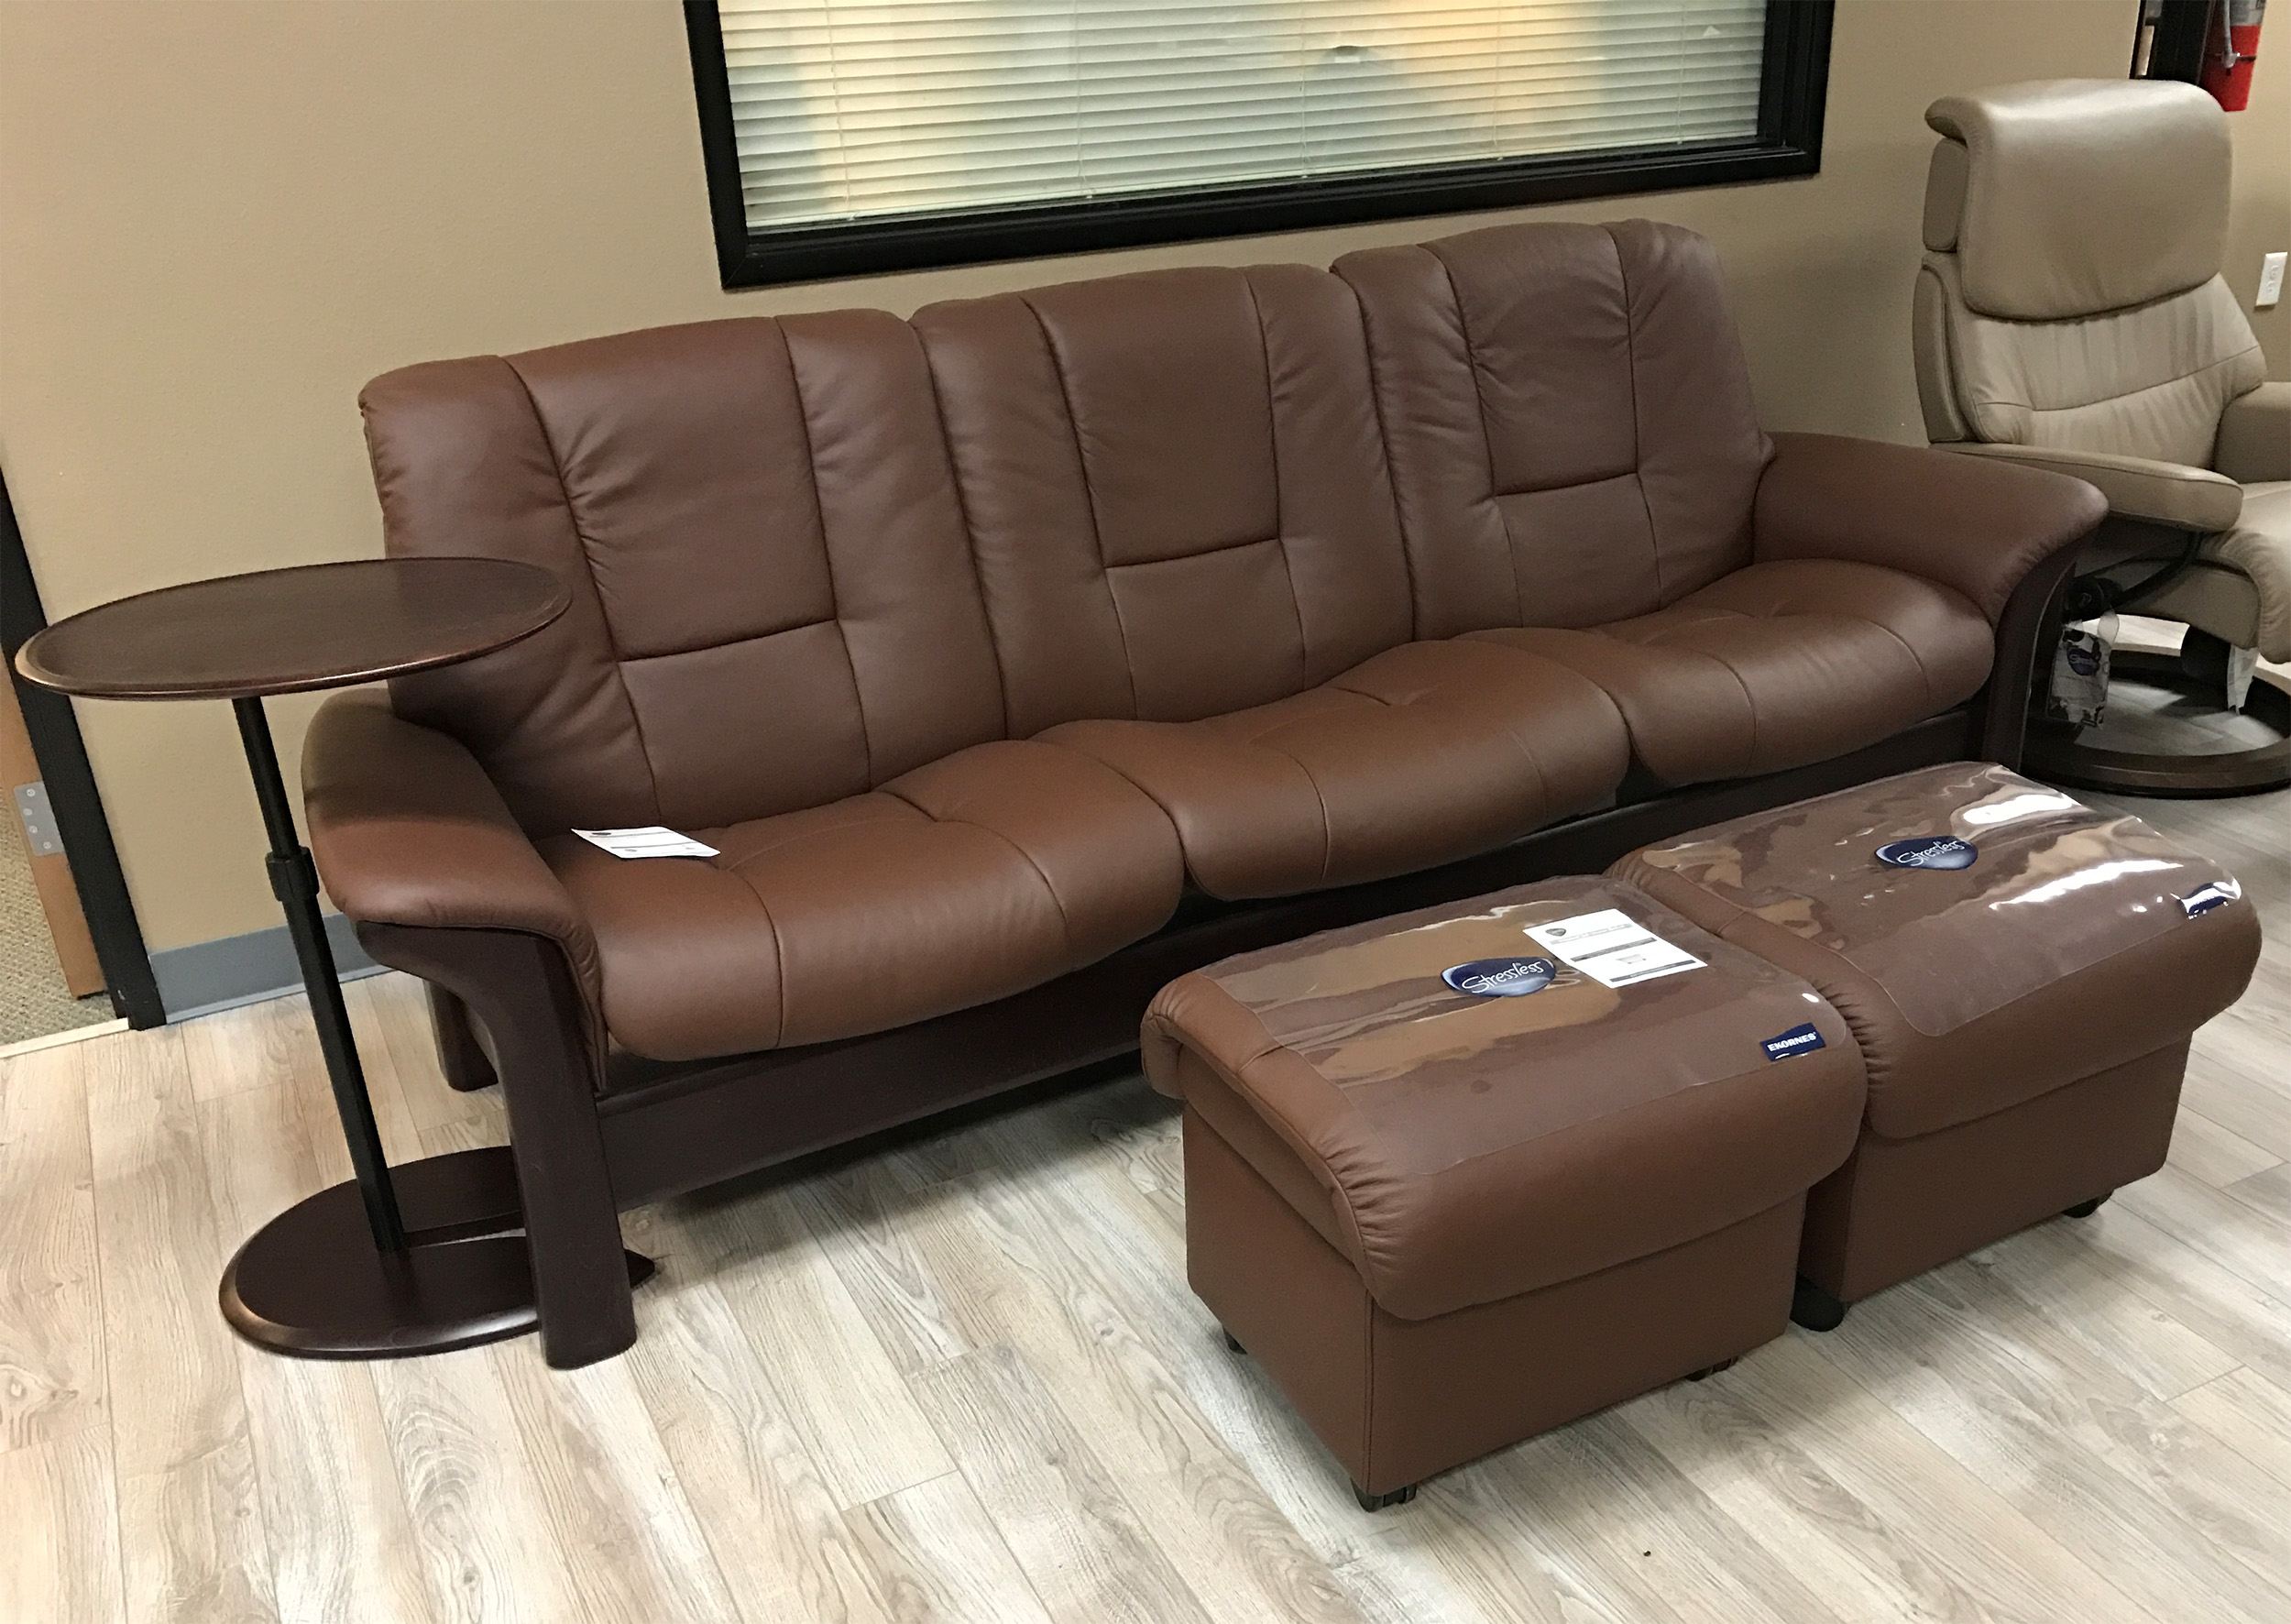 Ekornes Stressless Double Ottoman Soft Modern Ottoman Large Ottomans And Tables Double